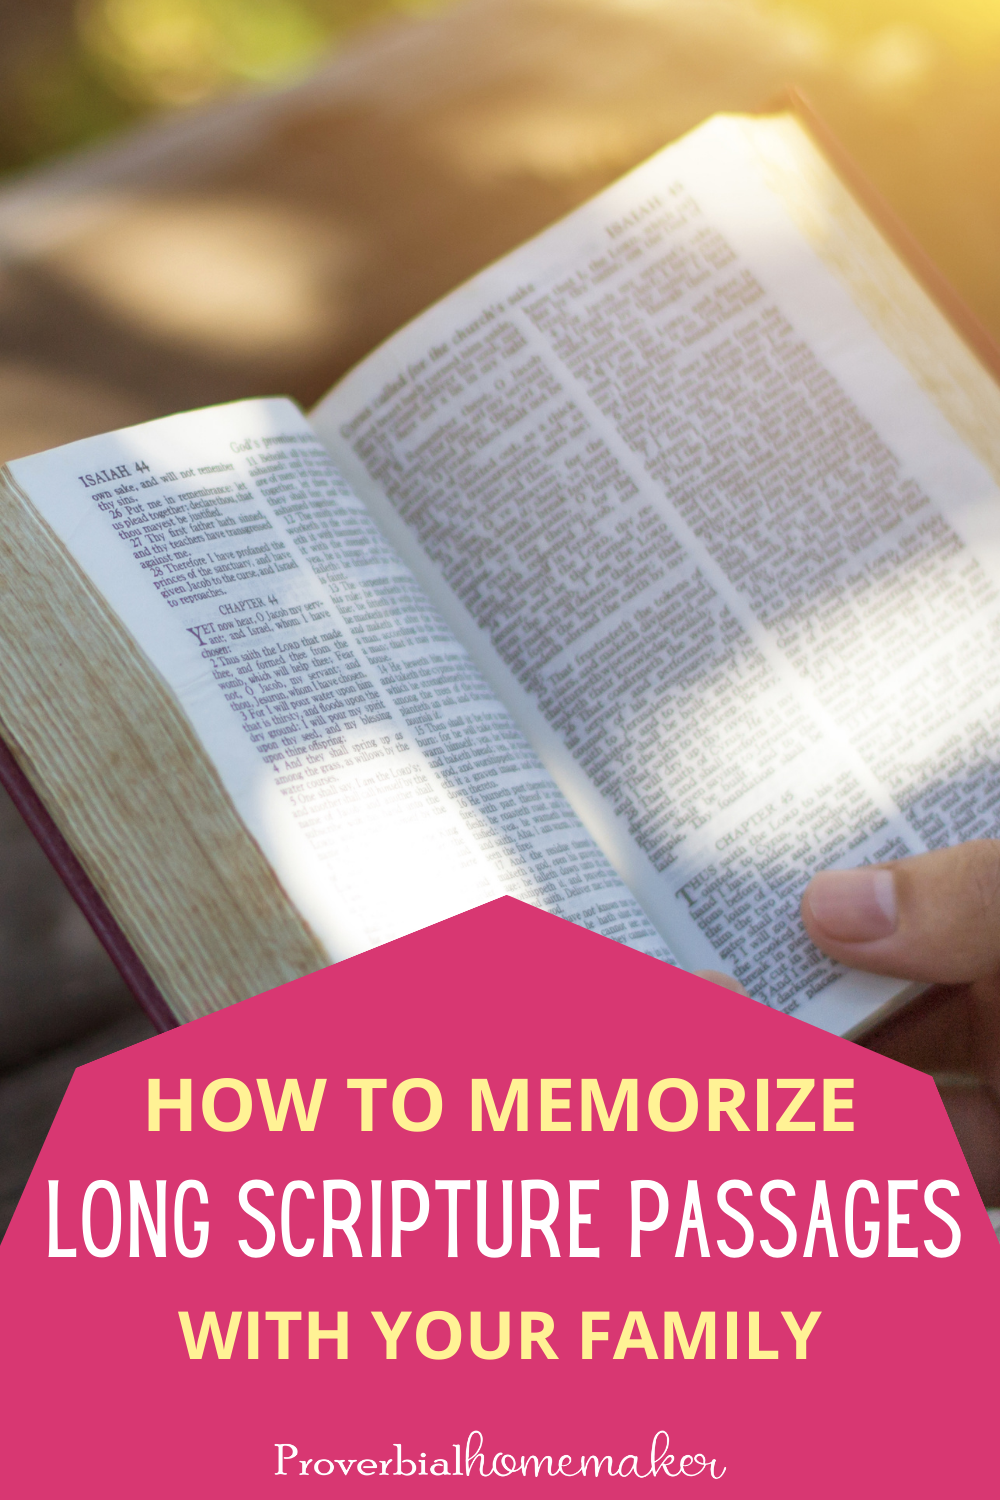 Want to memorize long Scripture passages with your kids? Find out some great tips and printable resources to help you make it successful.